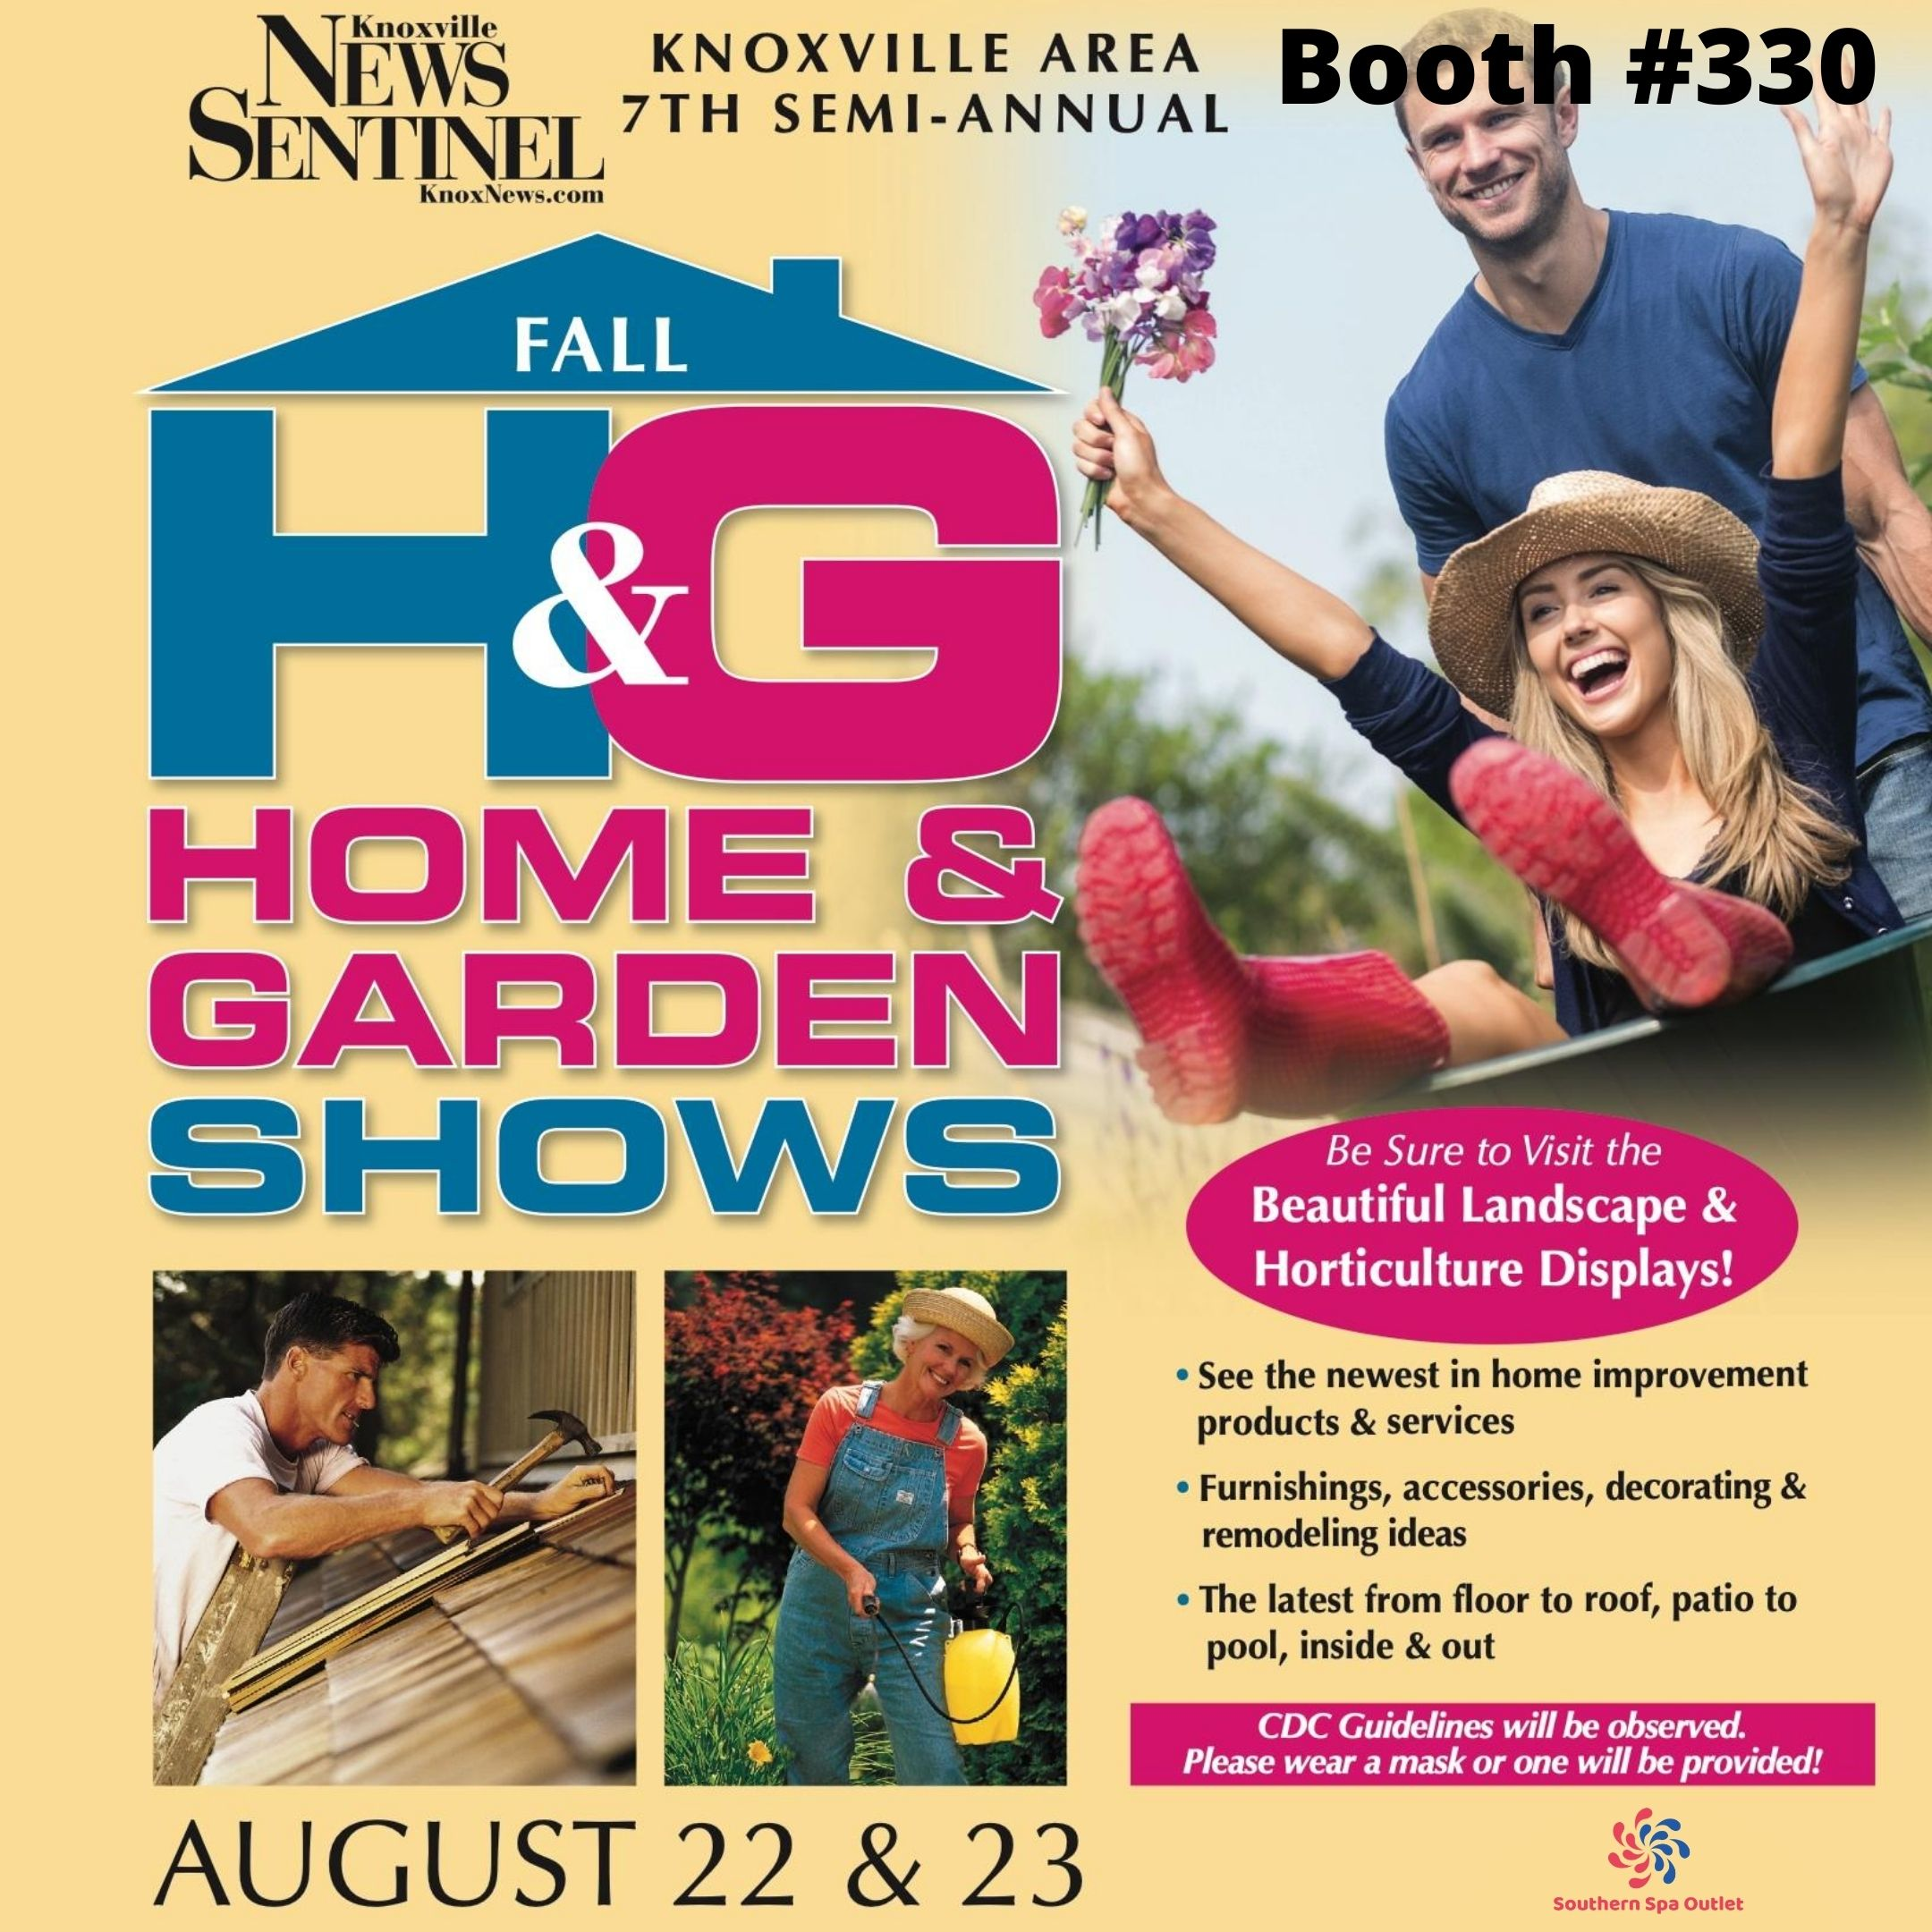 Home & Garden show in Knoxville 2020